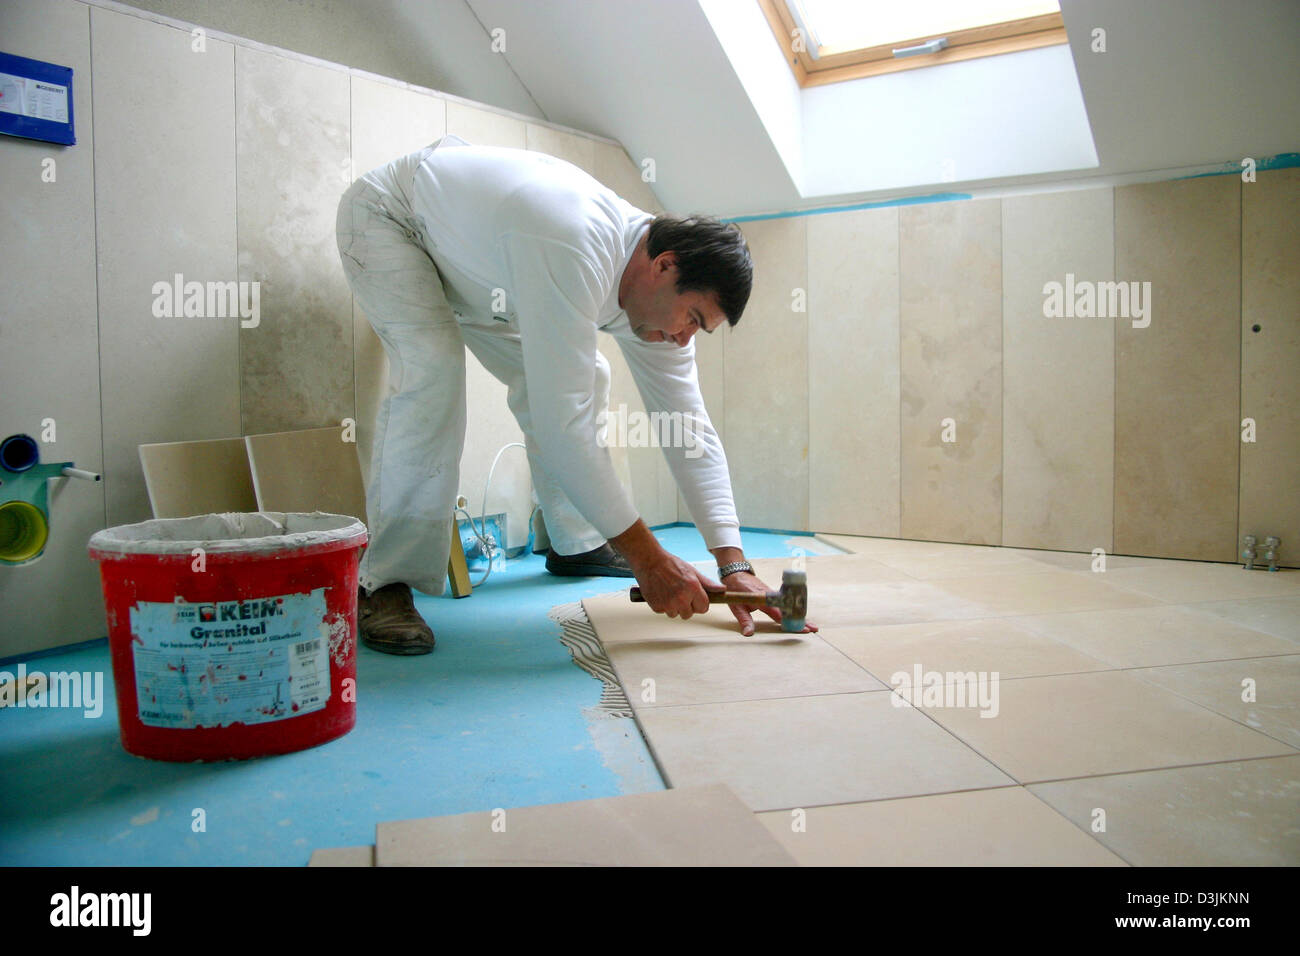 dpa) - A tiler tiles a bathroom at a construction site in Germany ...